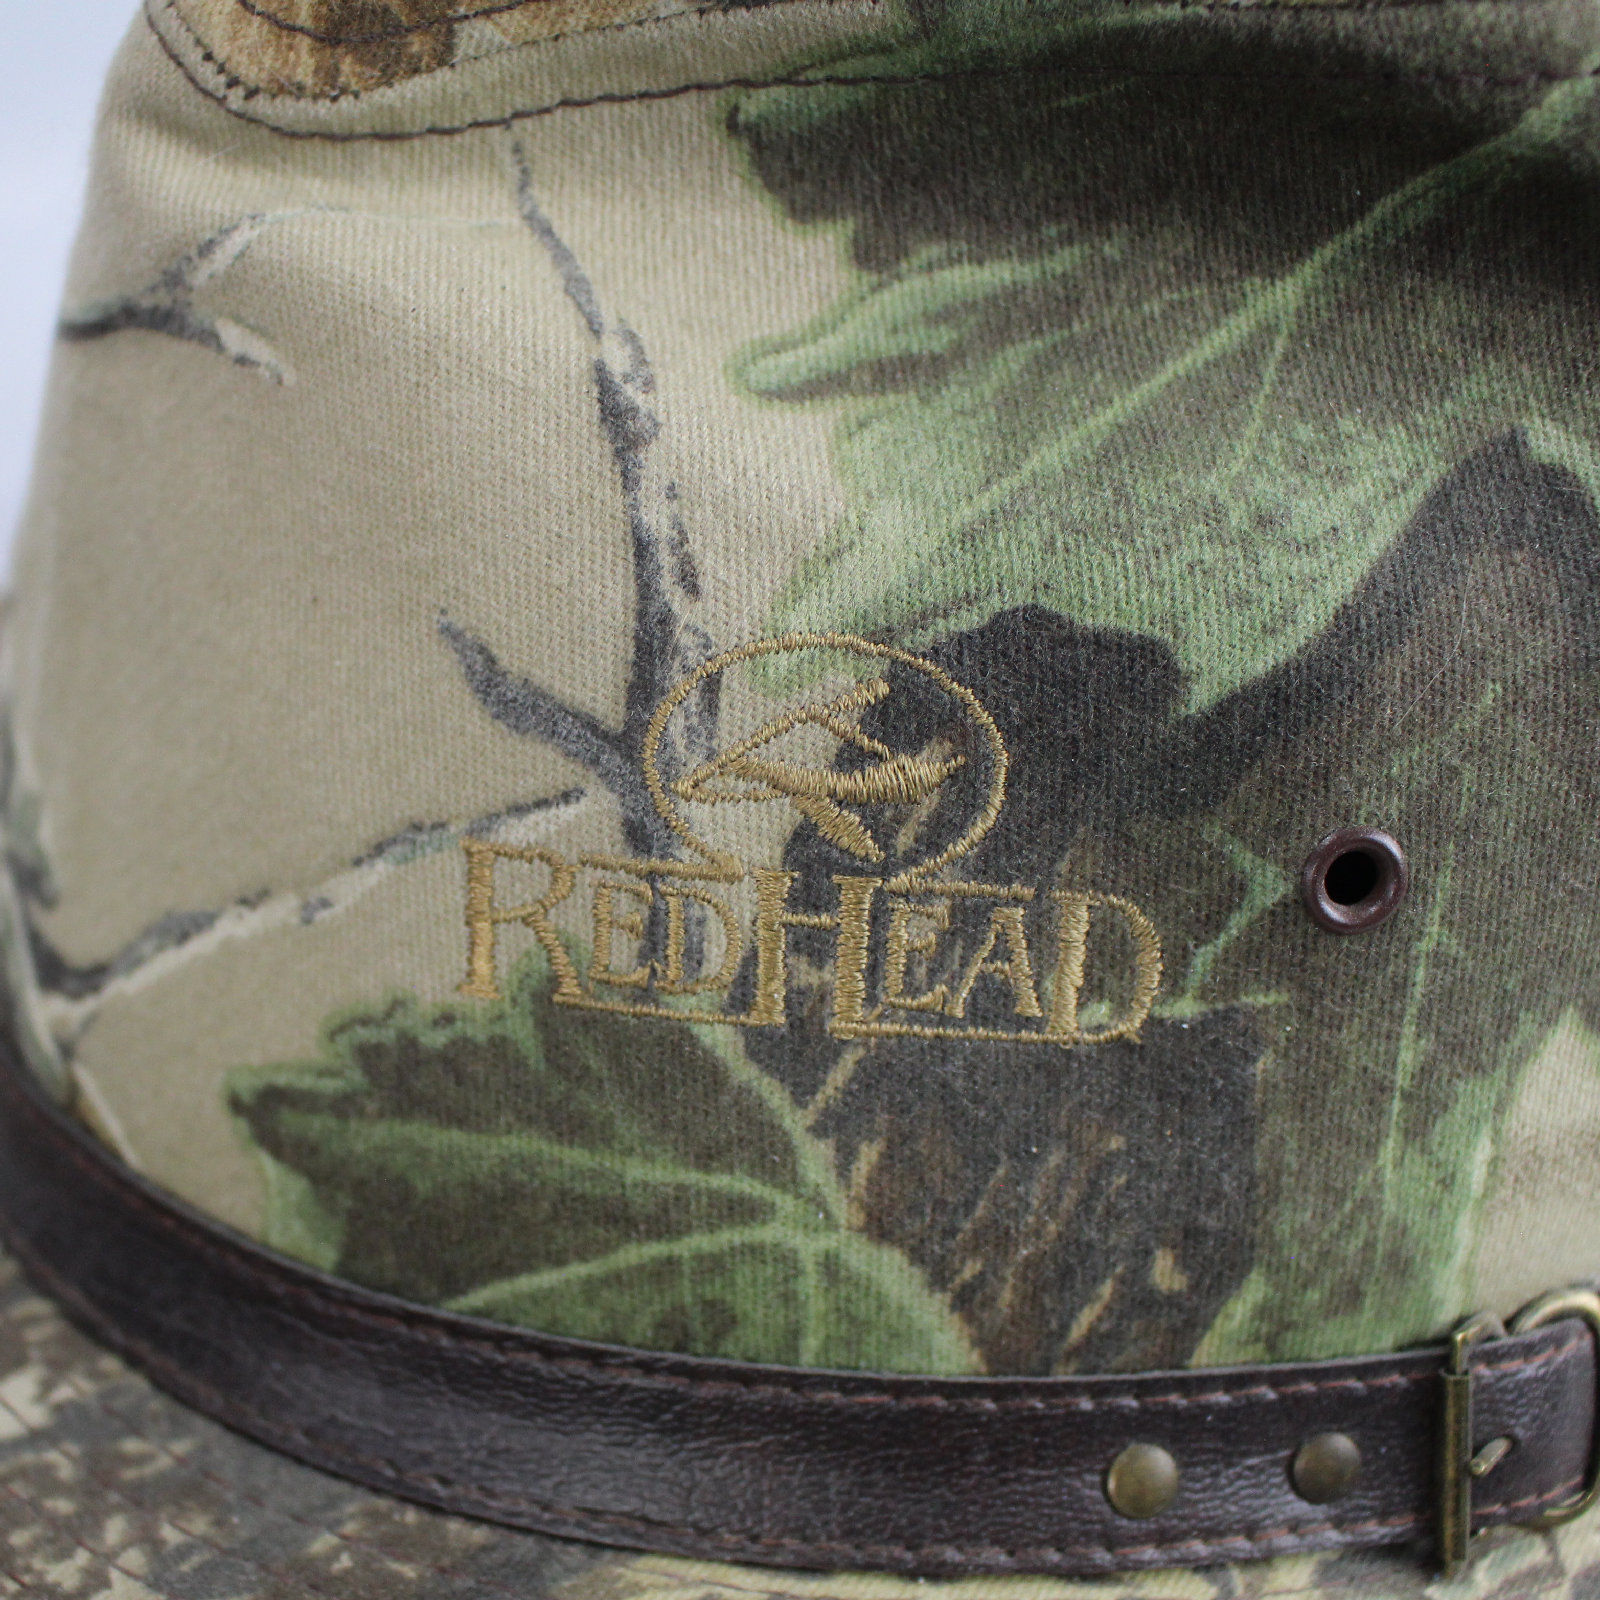 RedHead Realtree Safari Camouflage Large Fitted Hat USA Brown Leather Hat Band